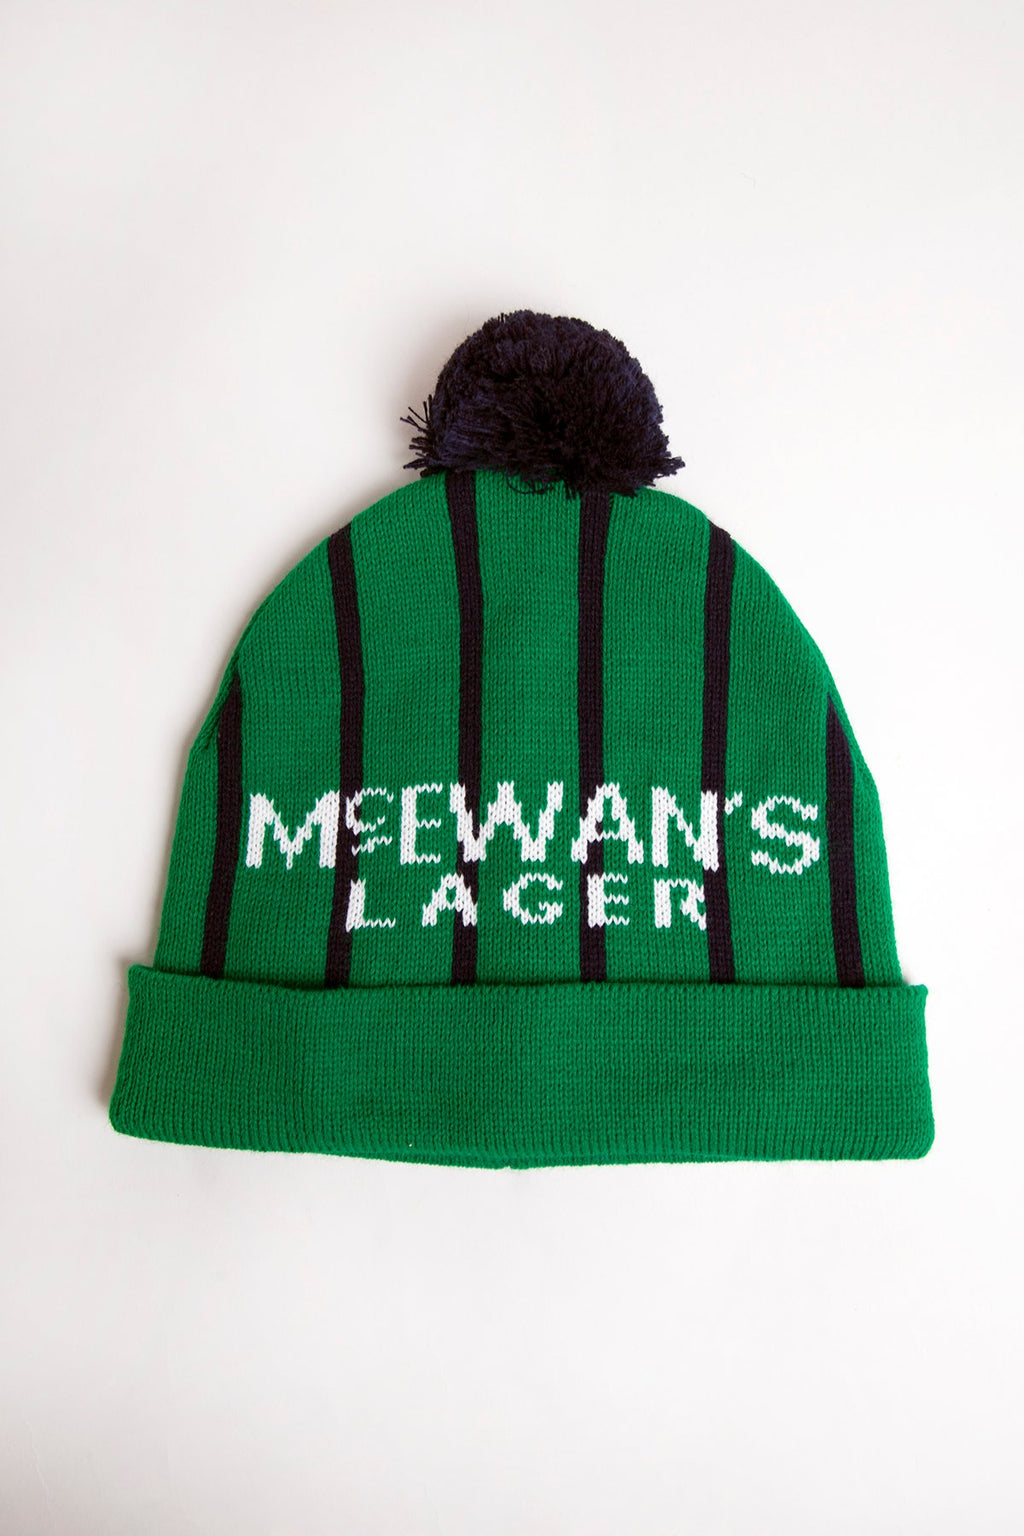 mcewans lager newcastle united 1994 green striped andy cole football strip inspired geordie wooly bobble hat newcastle hats